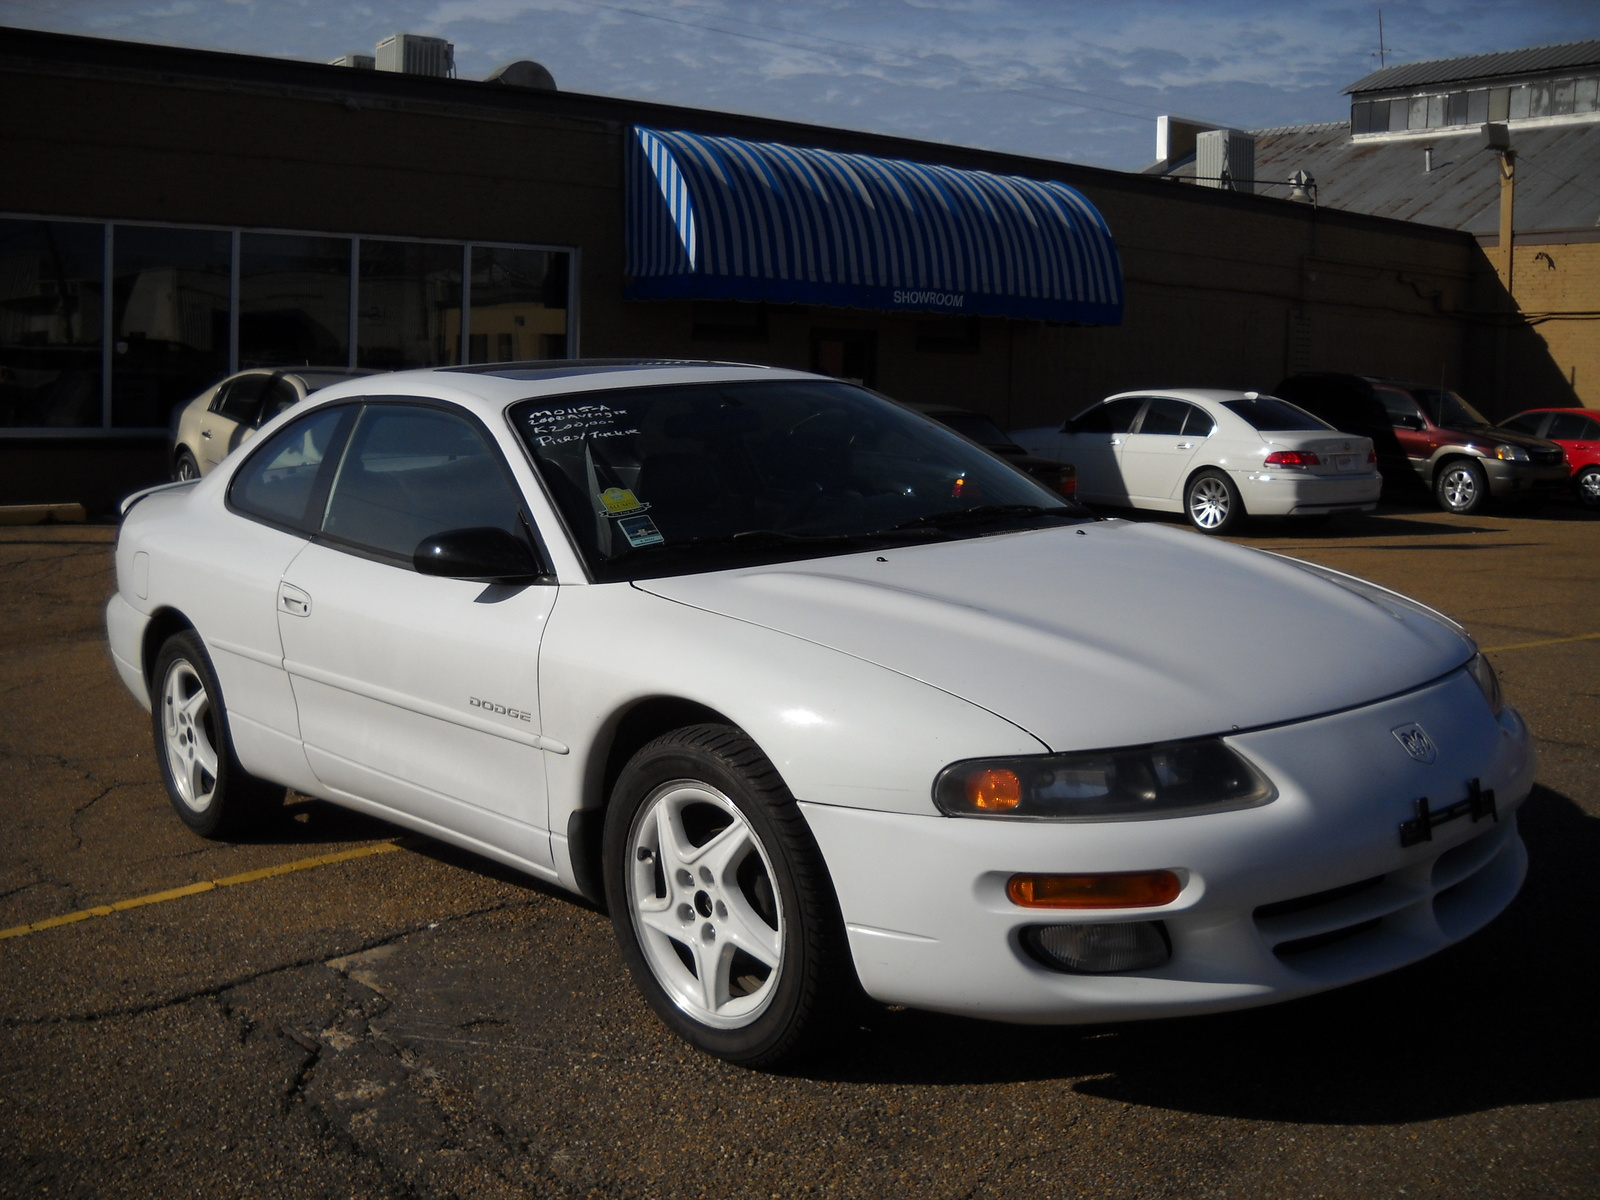 Picture of 2000 Dodge Avenger 2 Dr STD Coupe